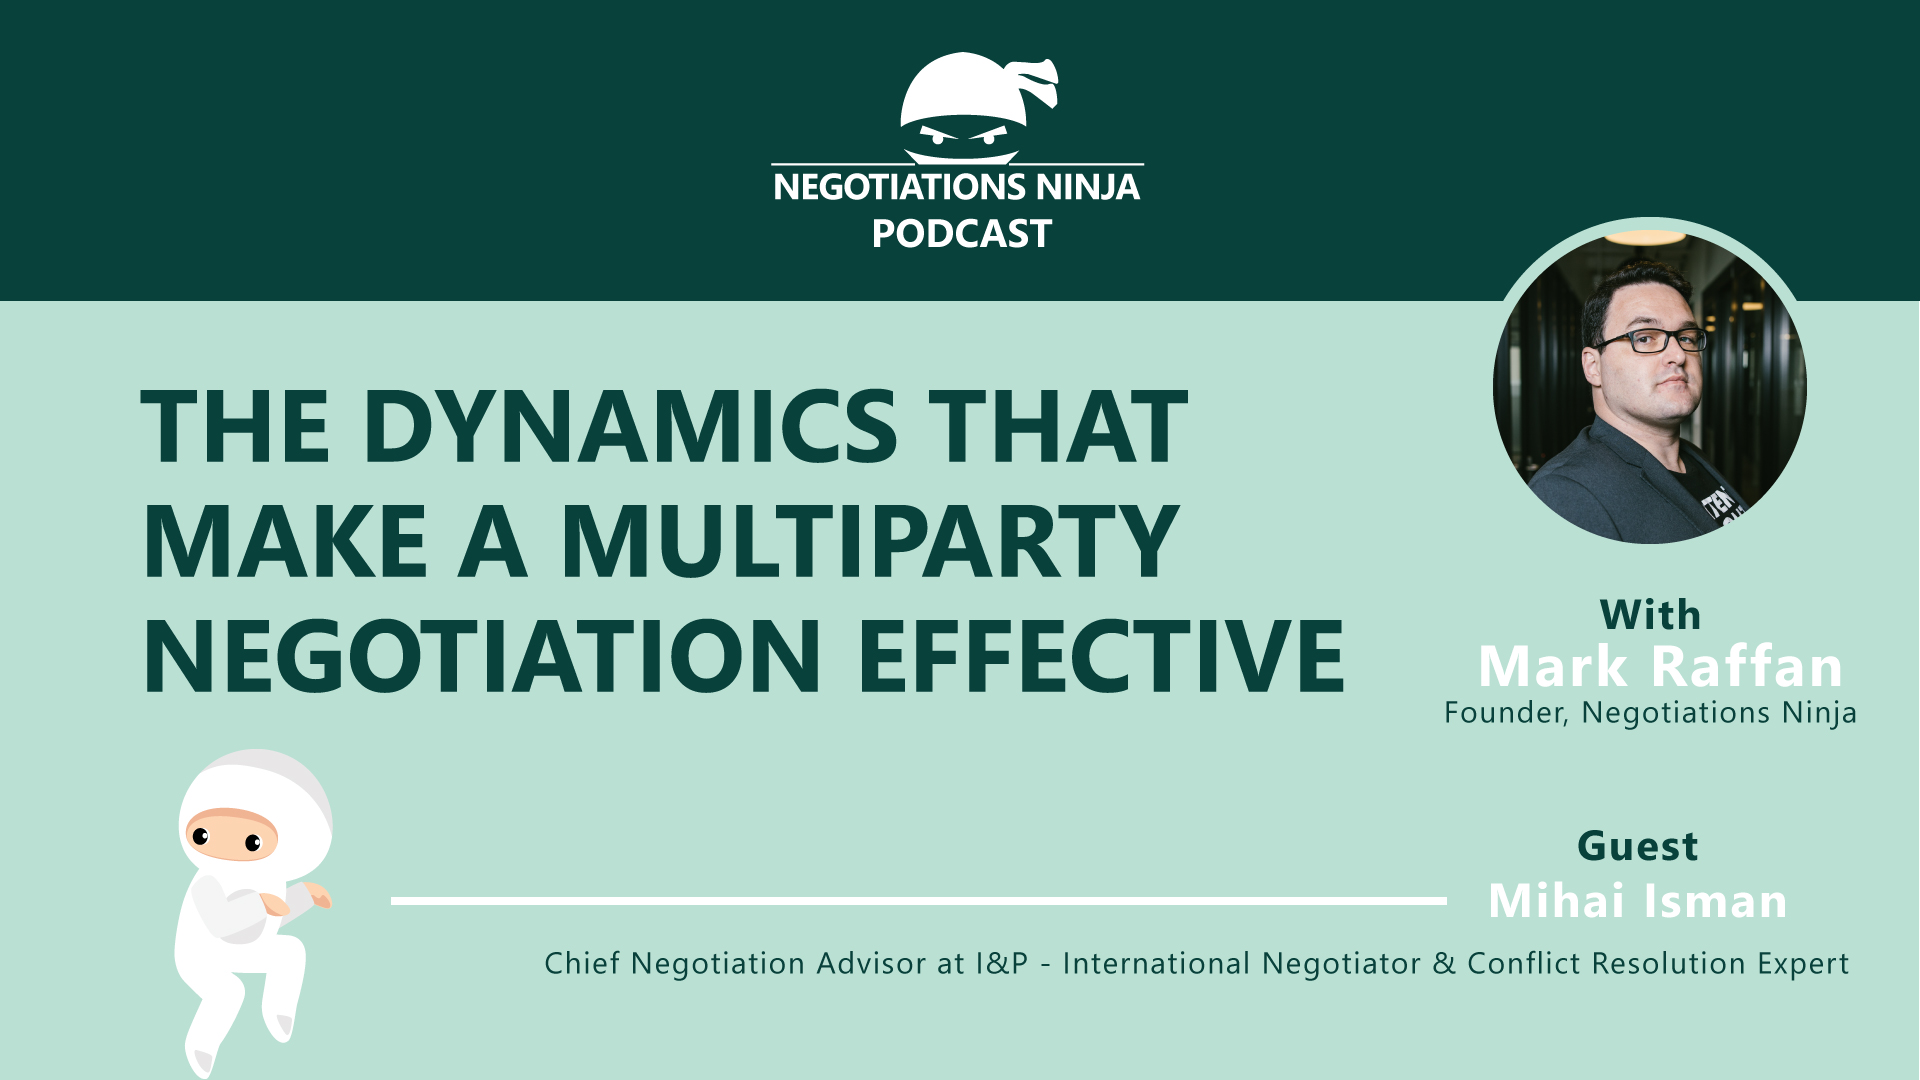 Dynamics That Make a Multiparty Negotiation Effective